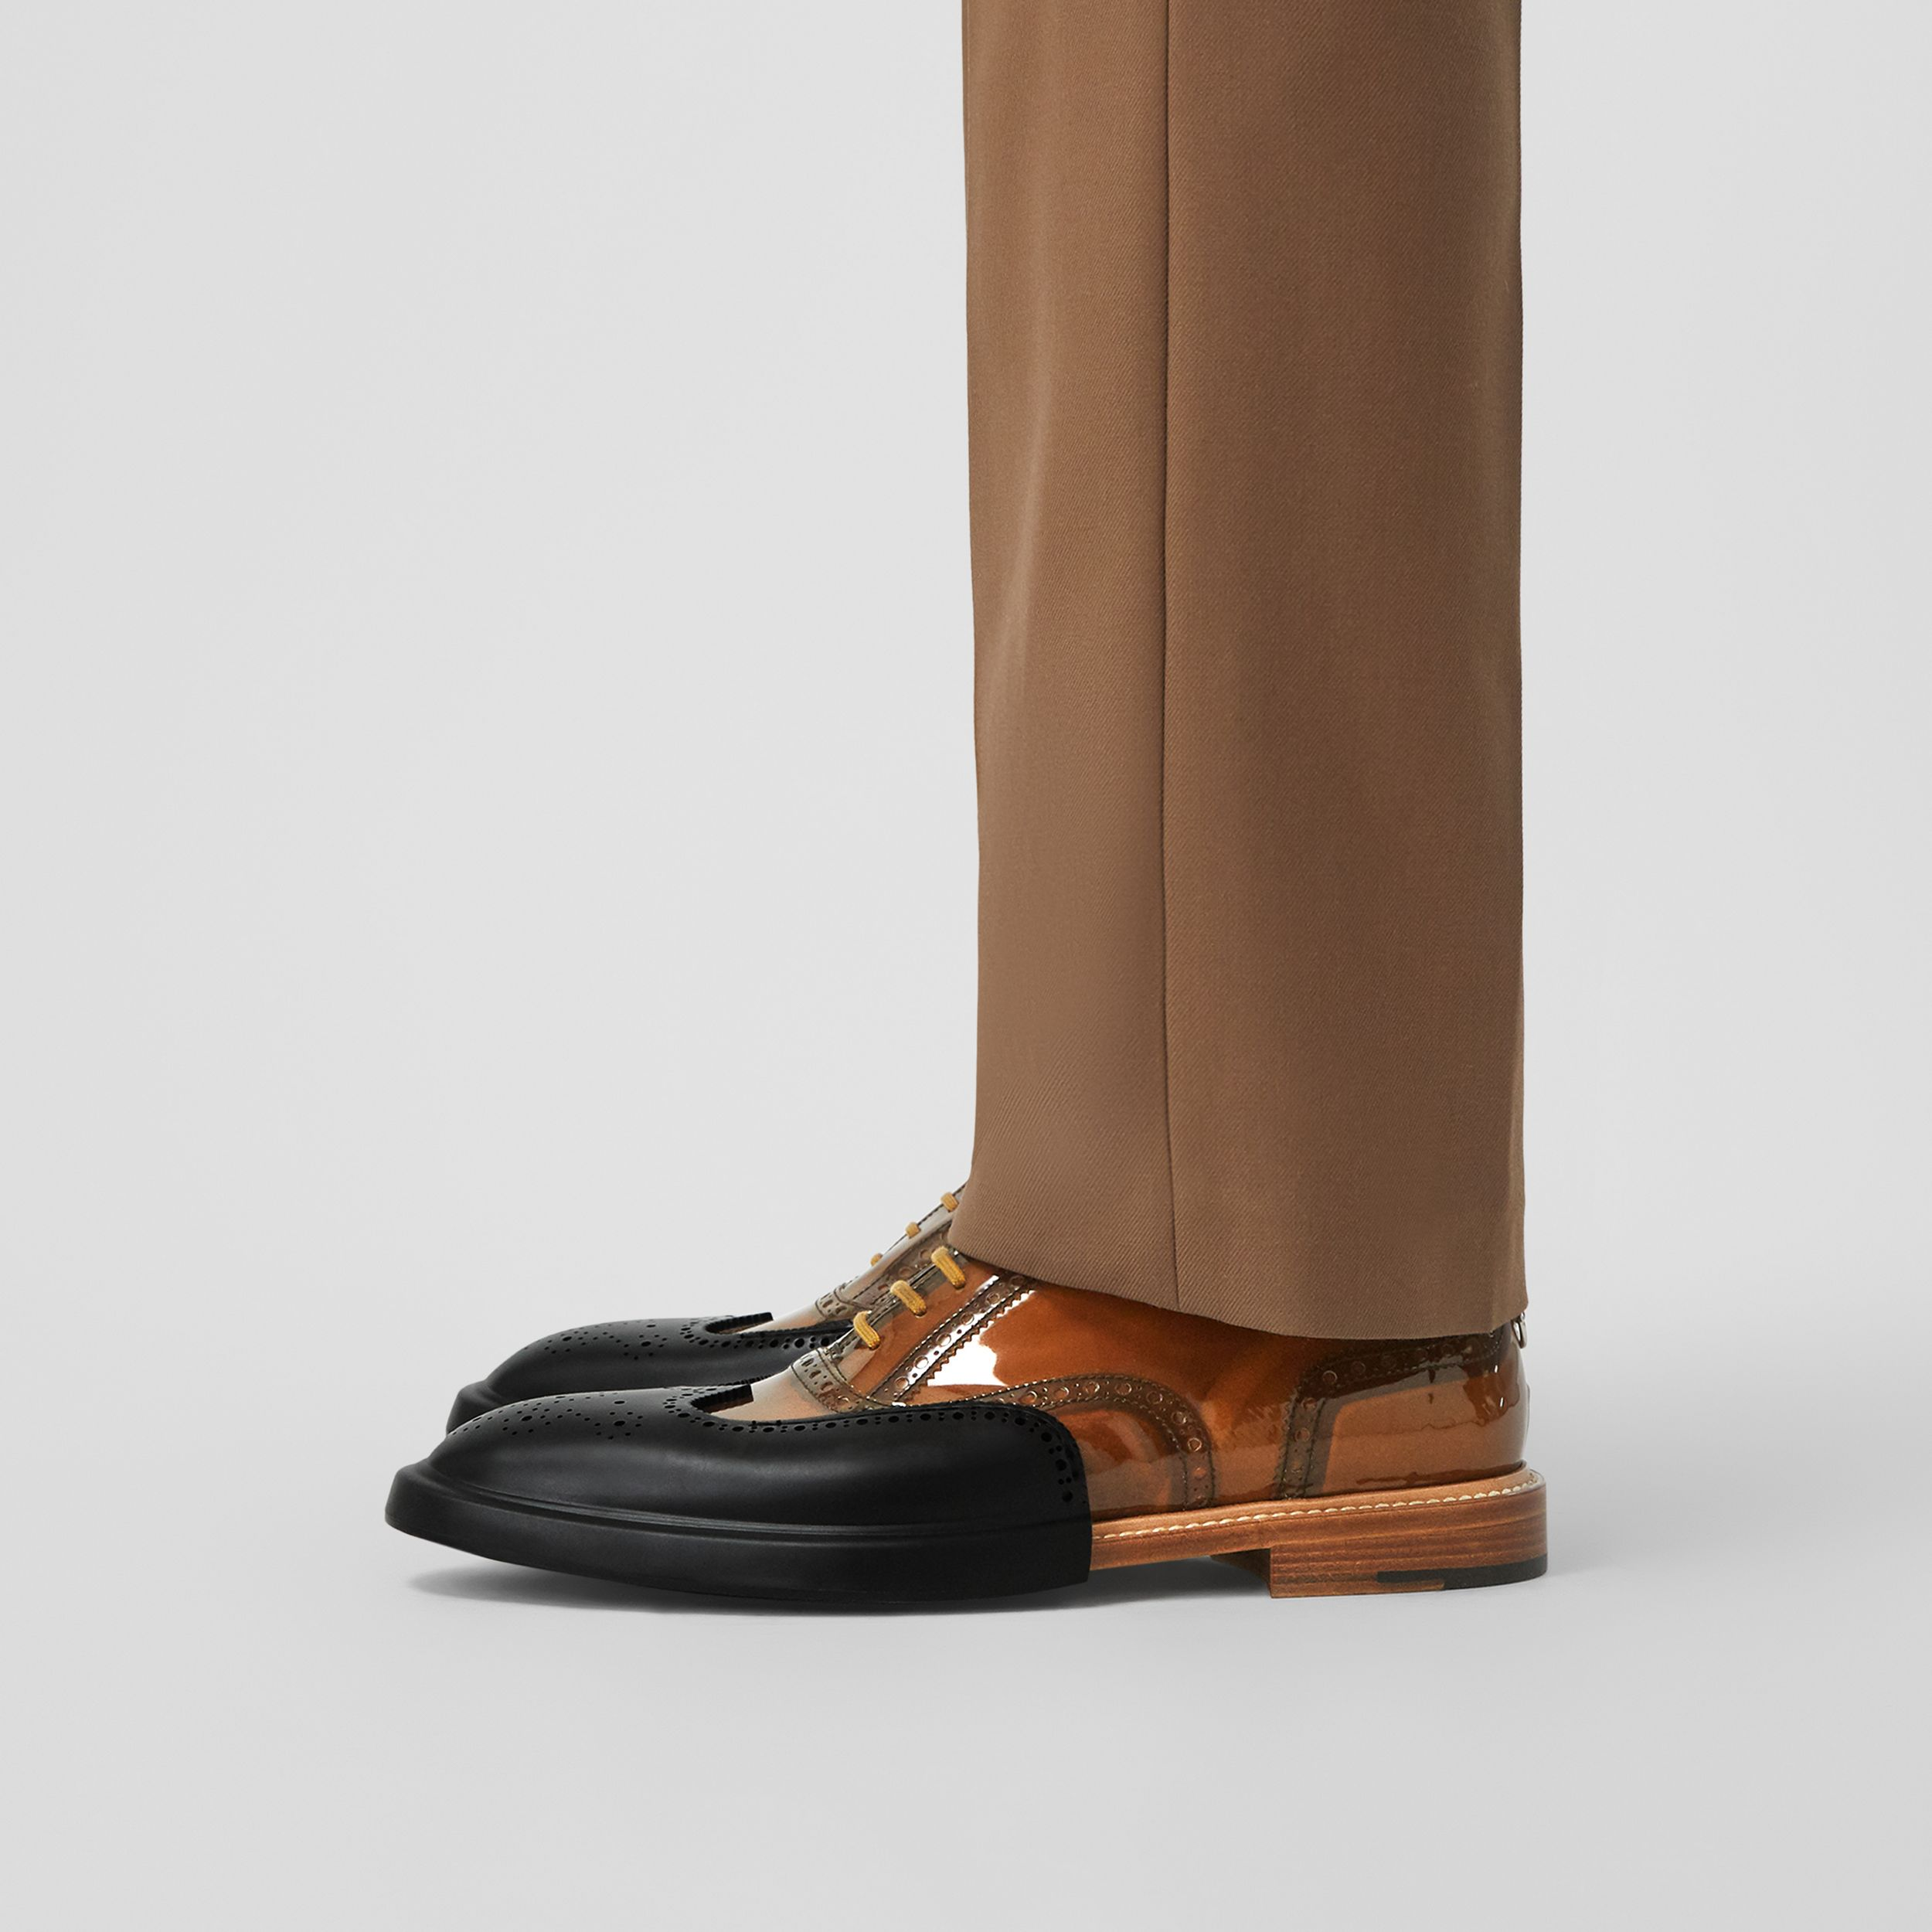 Toe Cap Detail Vinyl and Leather Oxford Brogues in Brown/black - Men | Burberry Australia - 3